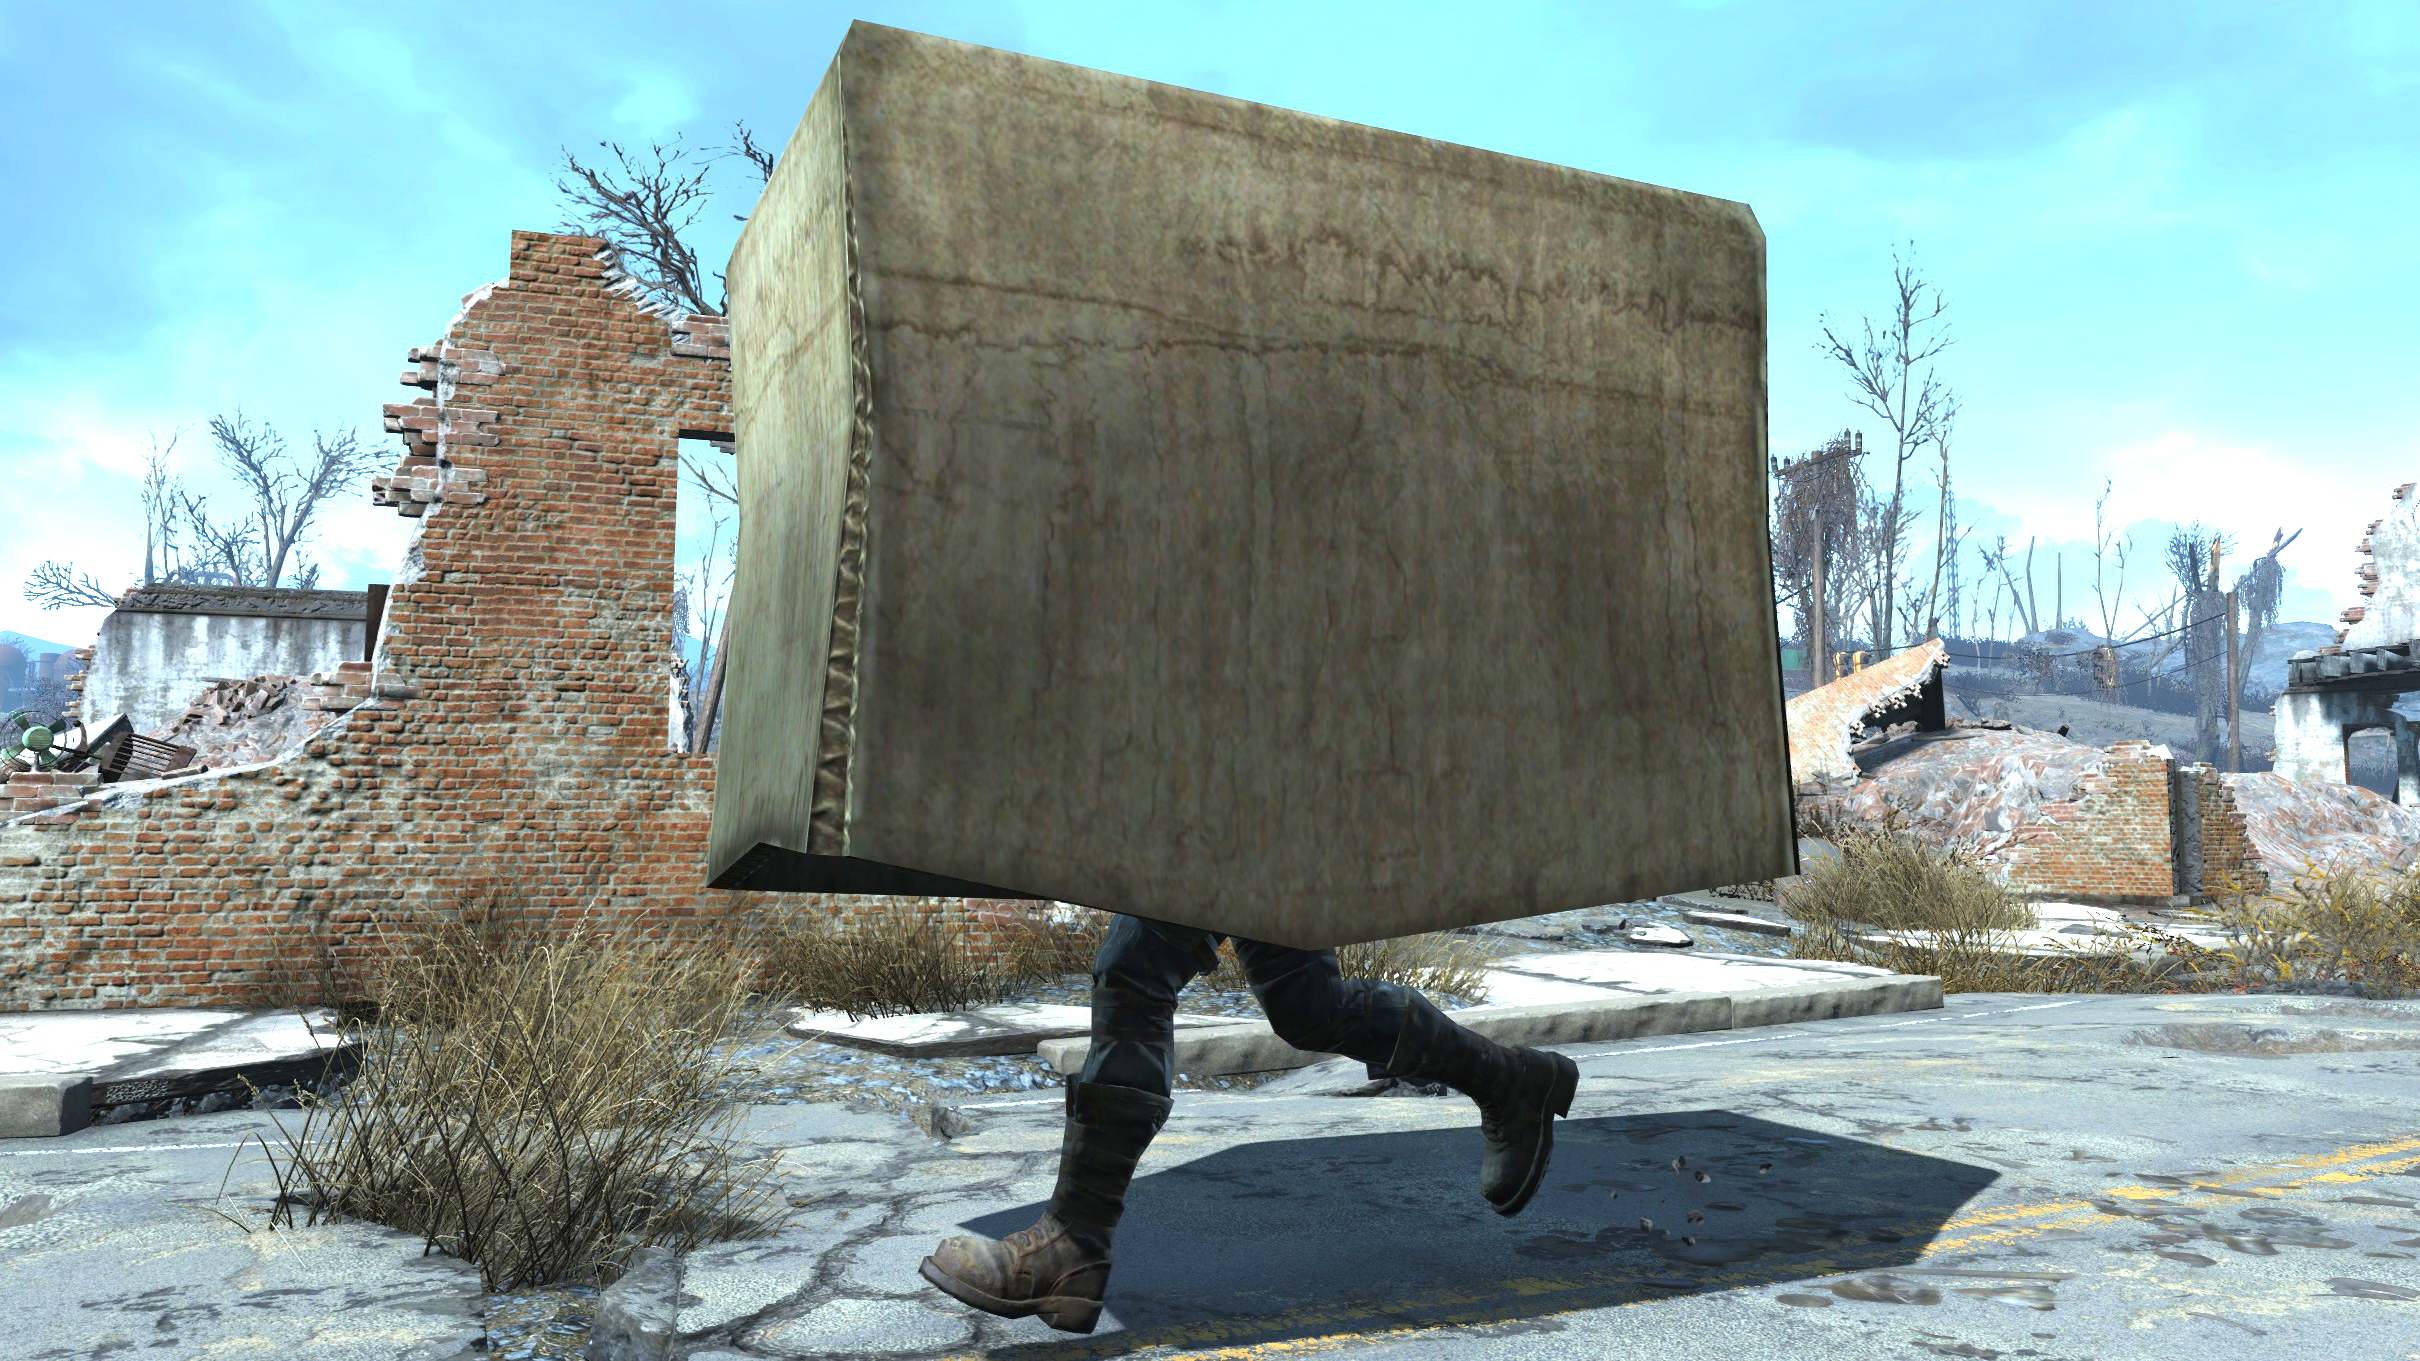 Fallout 4 gets Snake-level stealth with the Metal Gear Solid cardboard box mod